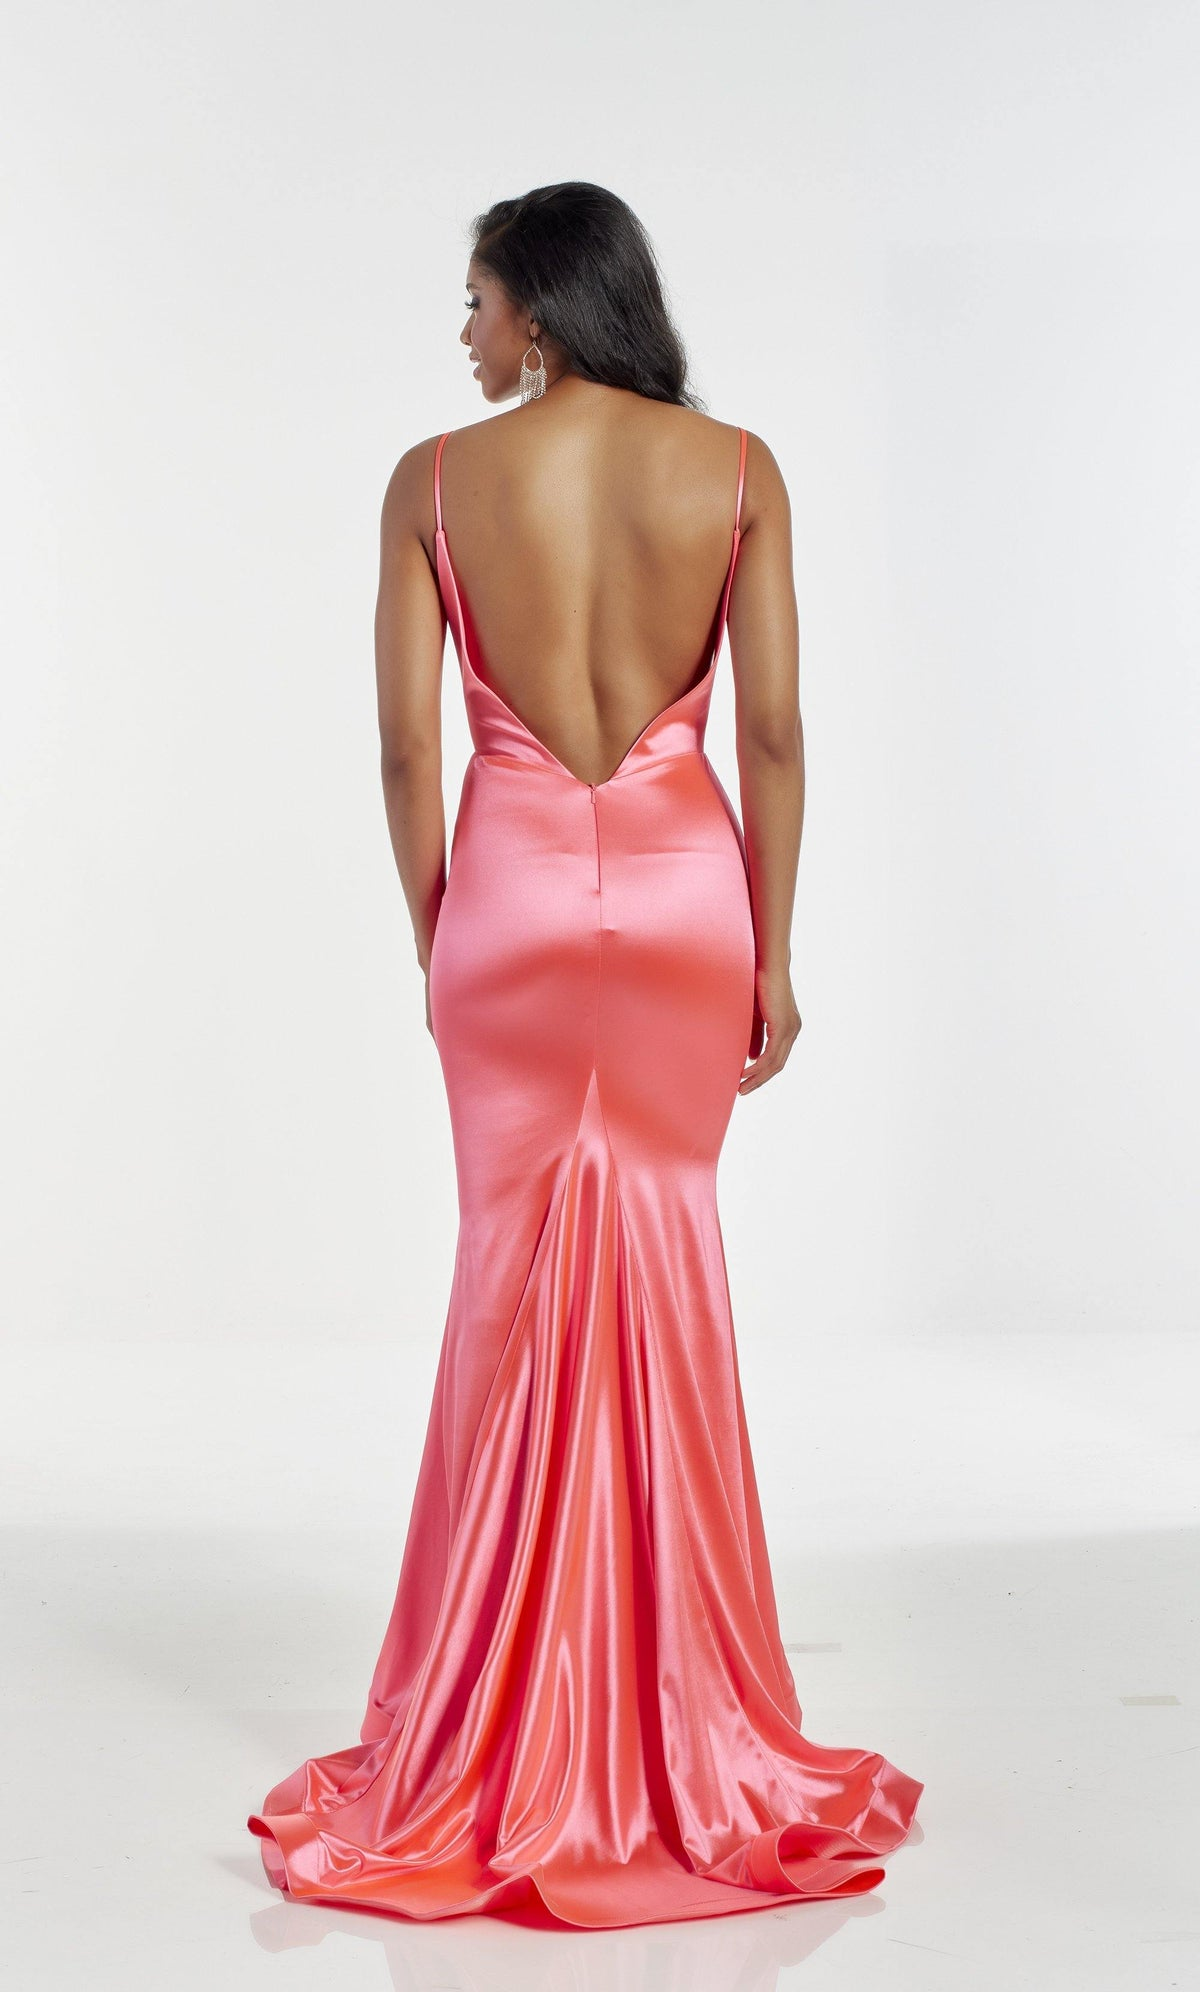 Hyper Pink fit and flare prom dress with a train